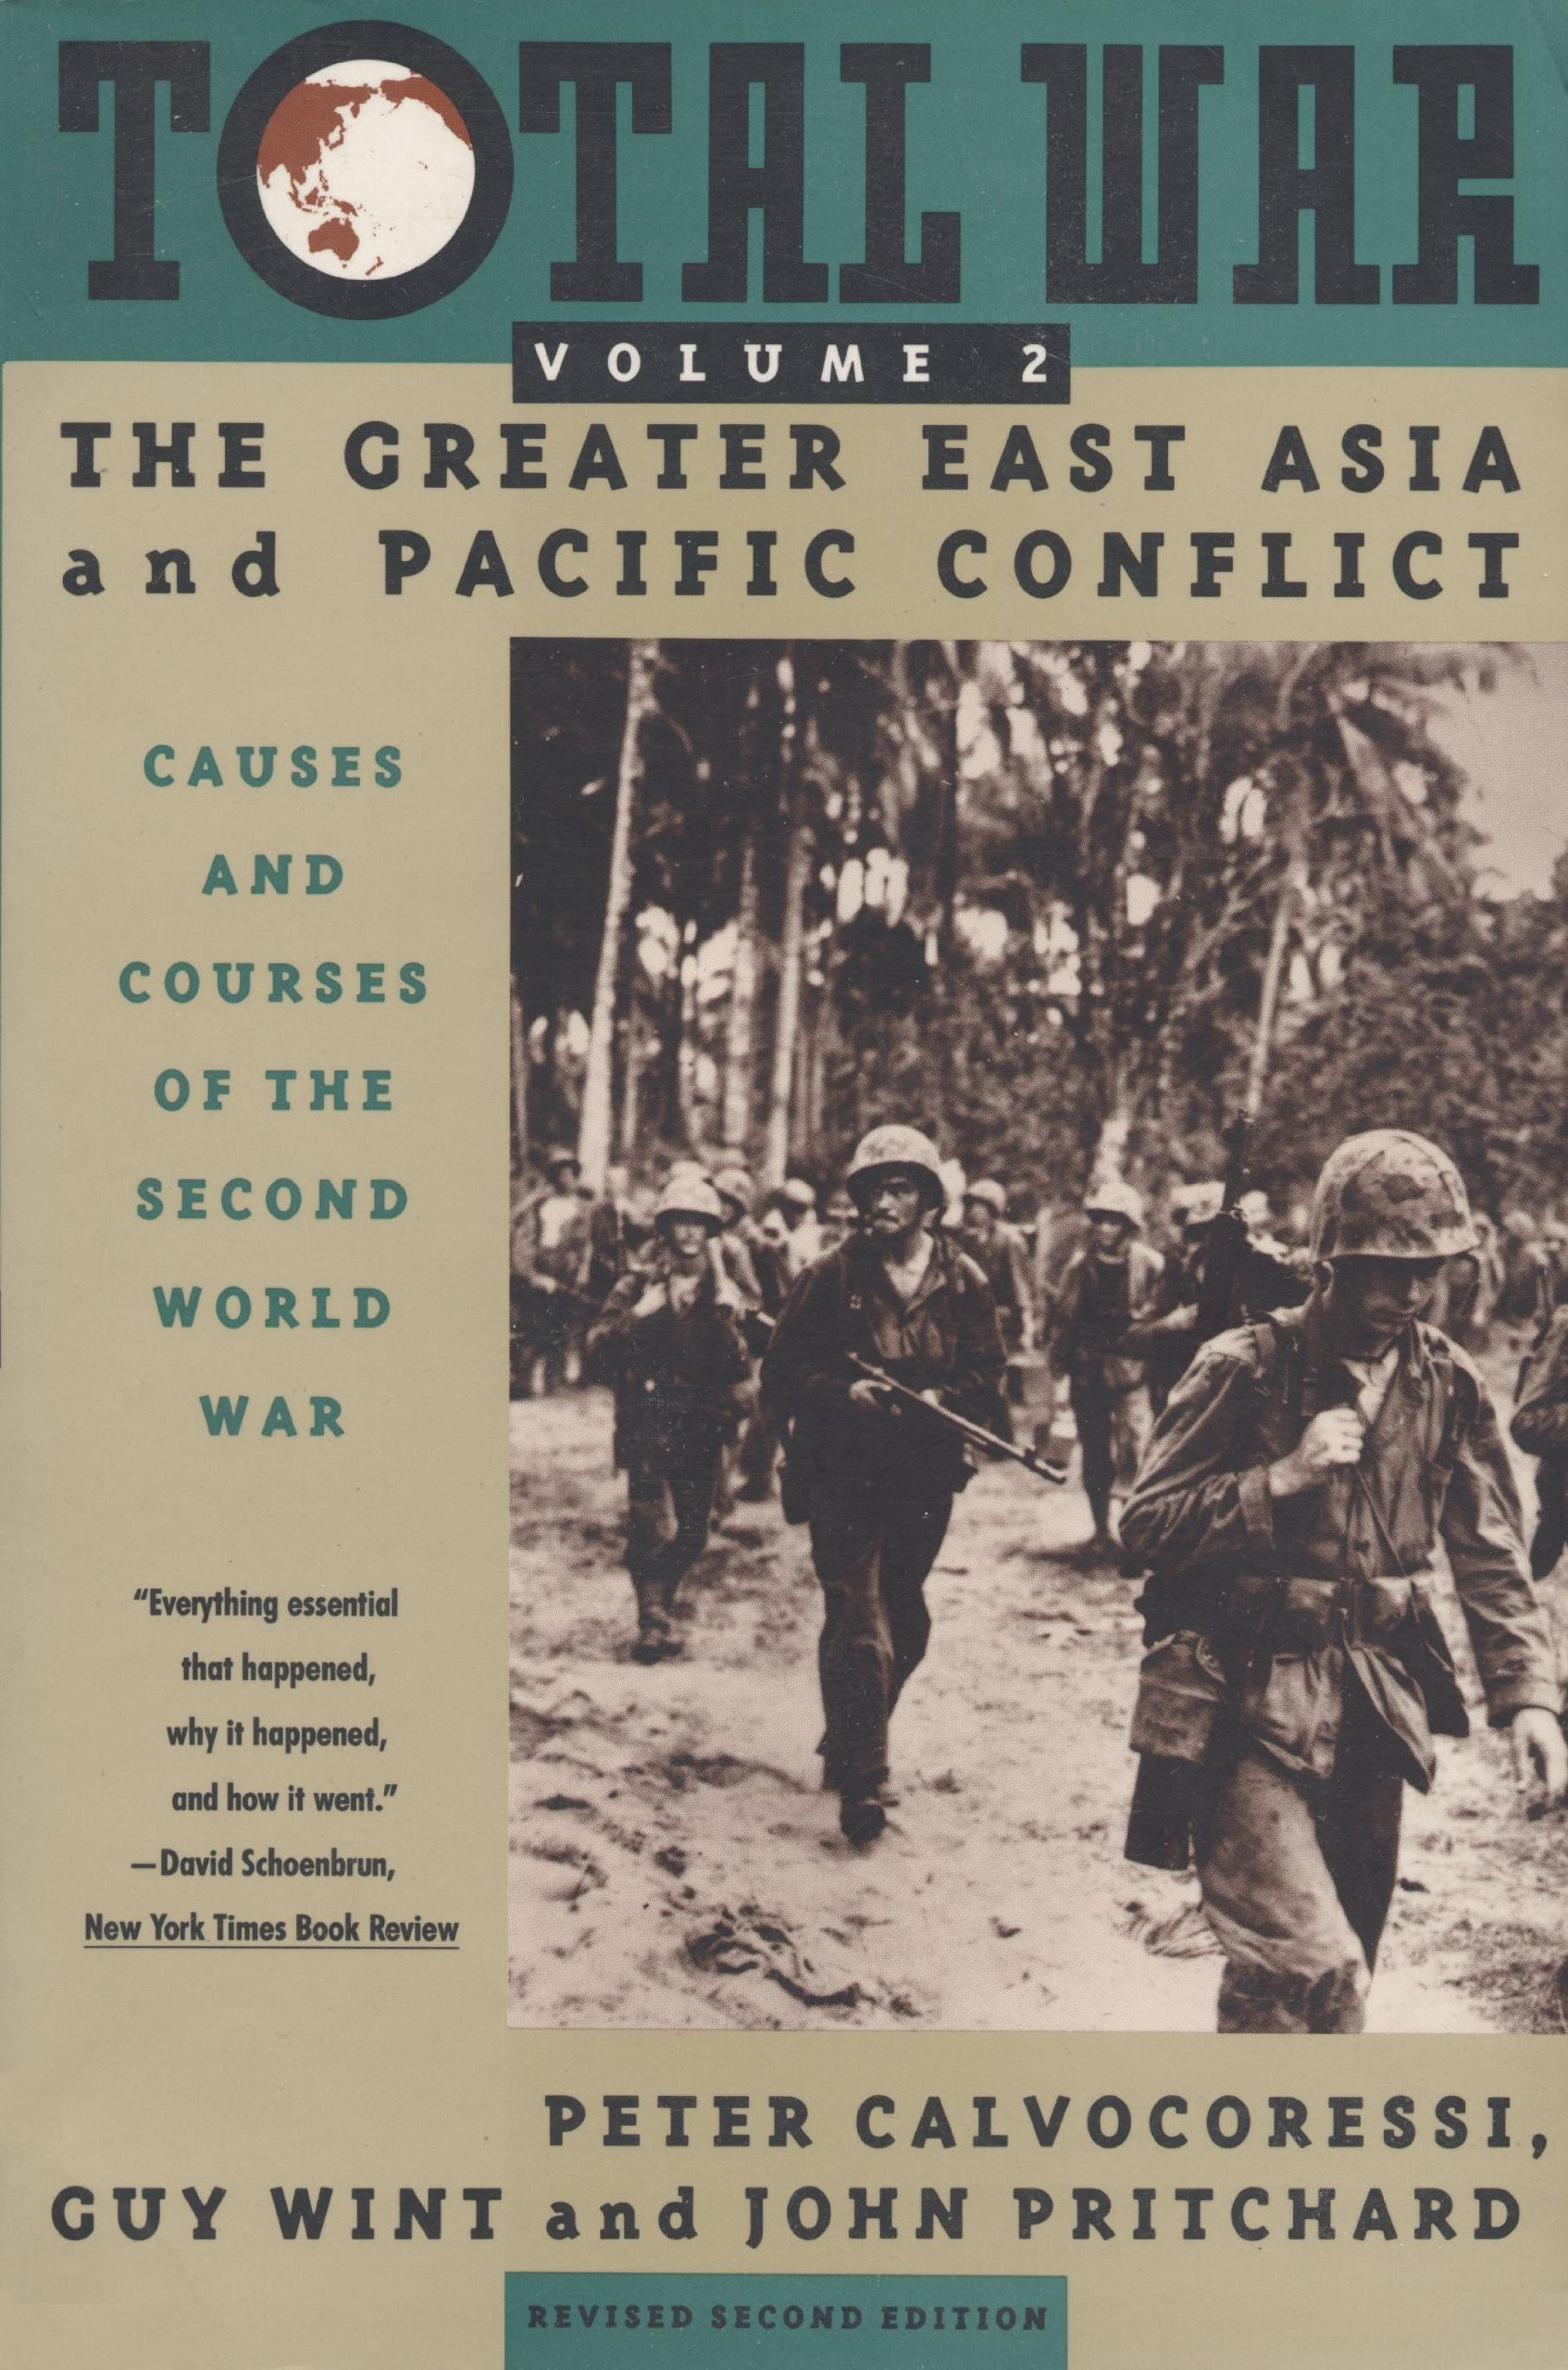 Total War: The Causes and Courses of the Second World War